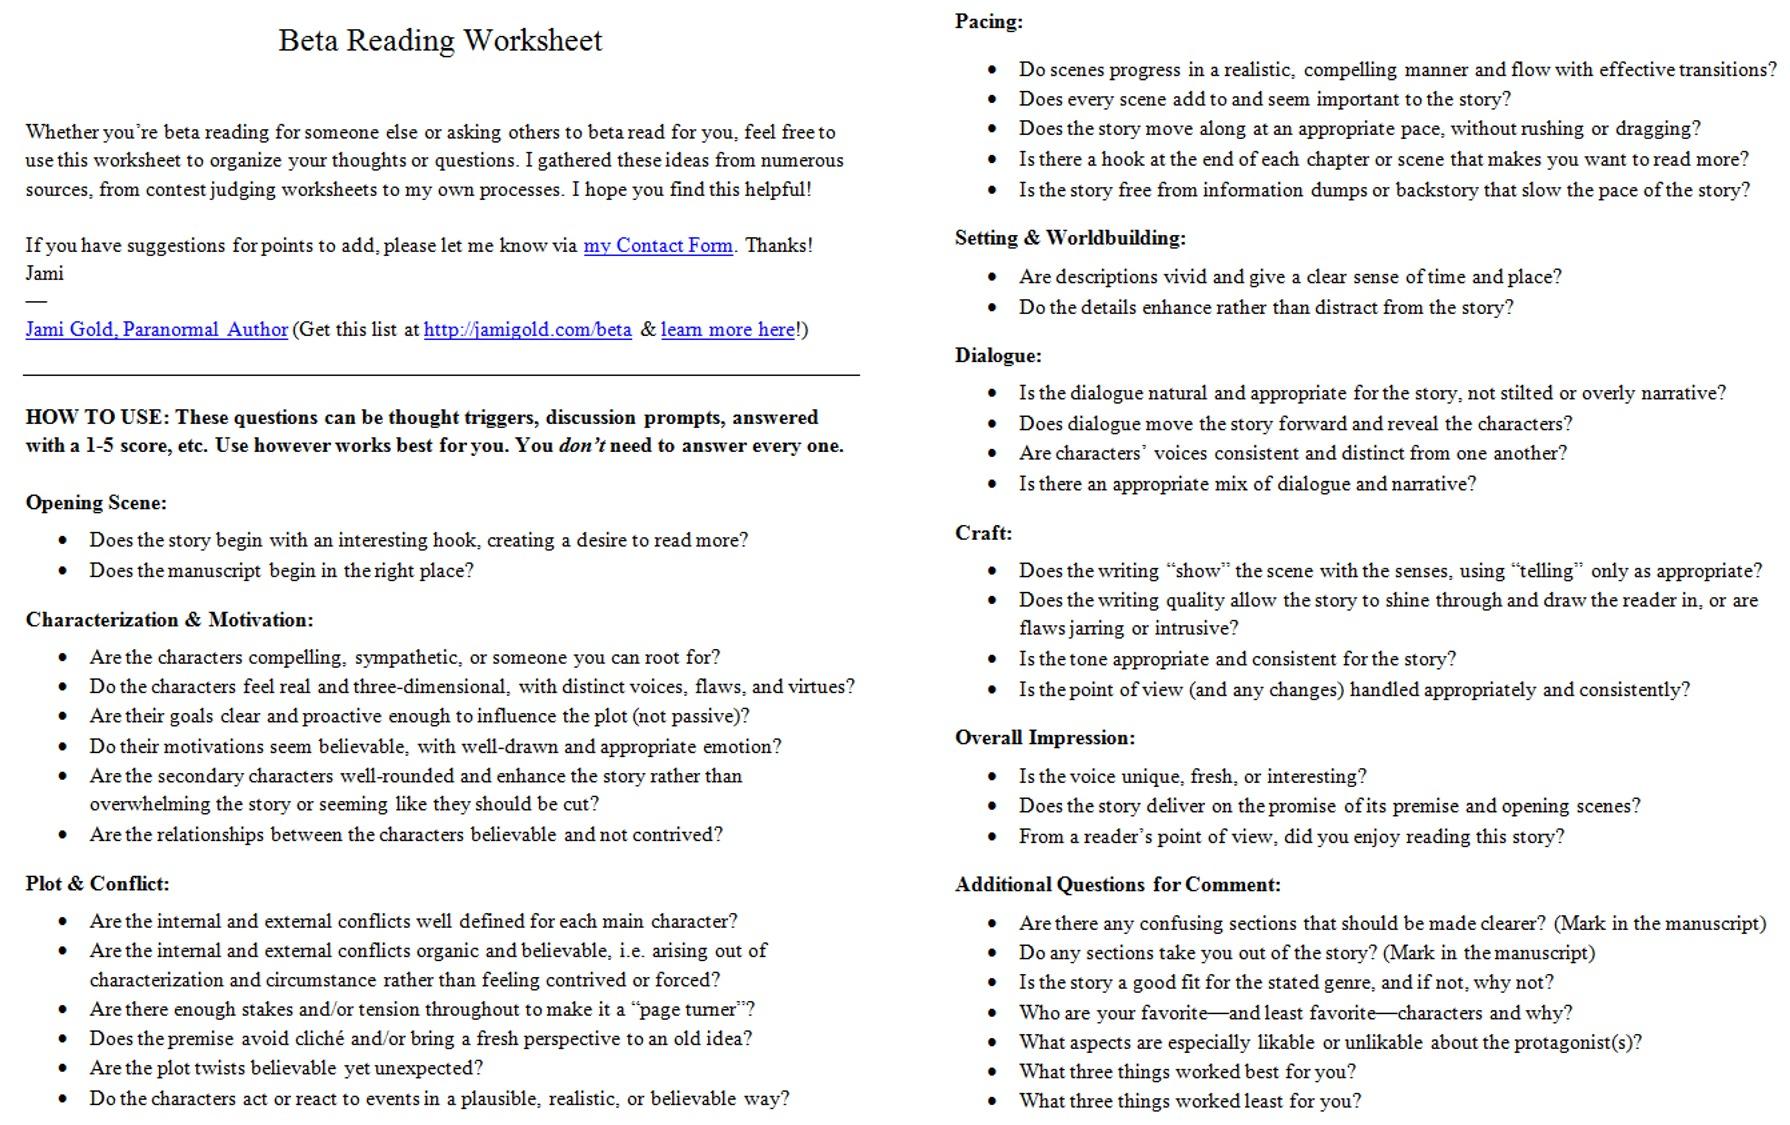 Weirdmailus  Mesmerizing Worksheets For Writers  Jami Gold Paranormal Author With Extraordinary Screen Shot Of The Twopage Beta Reading Worksheet With Easy On The Eye Grade  English Worksheets Also Prince Of Egypt Movie Worksheet In Addition Easy French Worksheets And Preschool Reading Comprehension Worksheets As Well As Workplace Safety Worksheets Additionally First Grade Math Worksheets Free Printables From Jamigoldcom With Weirdmailus  Extraordinary Worksheets For Writers  Jami Gold Paranormal Author With Easy On The Eye Screen Shot Of The Twopage Beta Reading Worksheet And Mesmerizing Grade  English Worksheets Also Prince Of Egypt Movie Worksheet In Addition Easy French Worksheets From Jamigoldcom